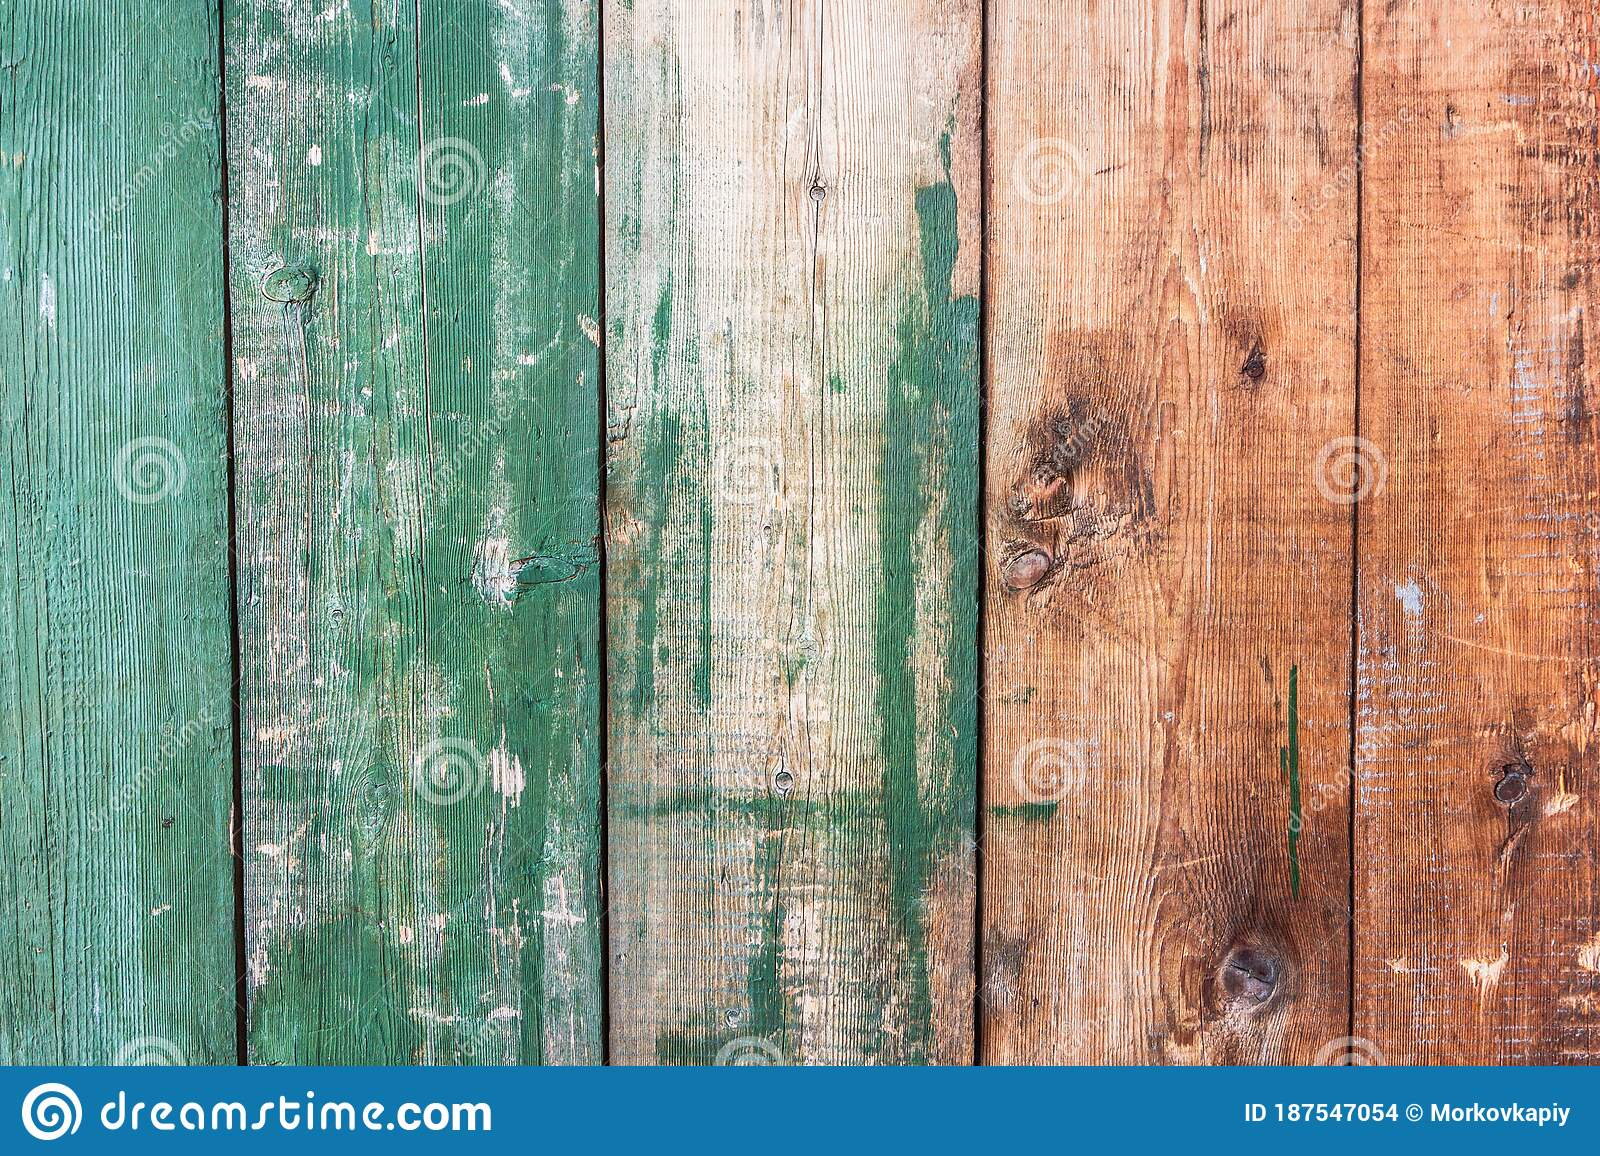 Green Barn Wooden Wall Paneling Wide Texture Old Solid Wood Slats Rustic Shabby Horizontal Background Stock Photo Image Of Panel Grungy 187547054